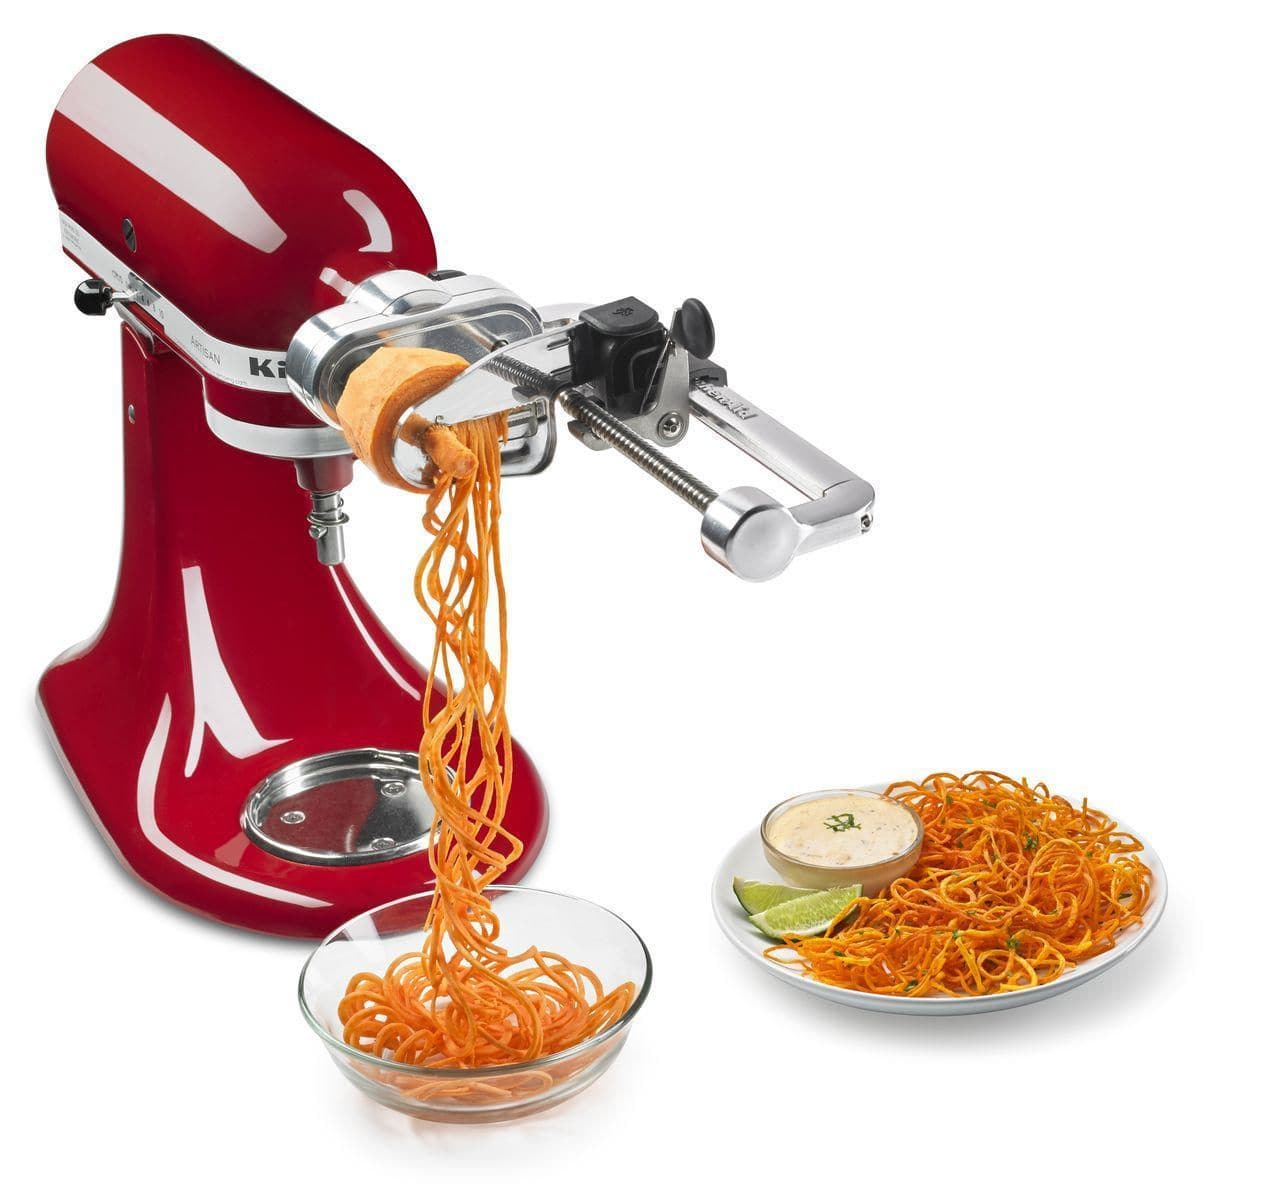 44.KitchenAid Spiralizer Stand Mixer Attachment